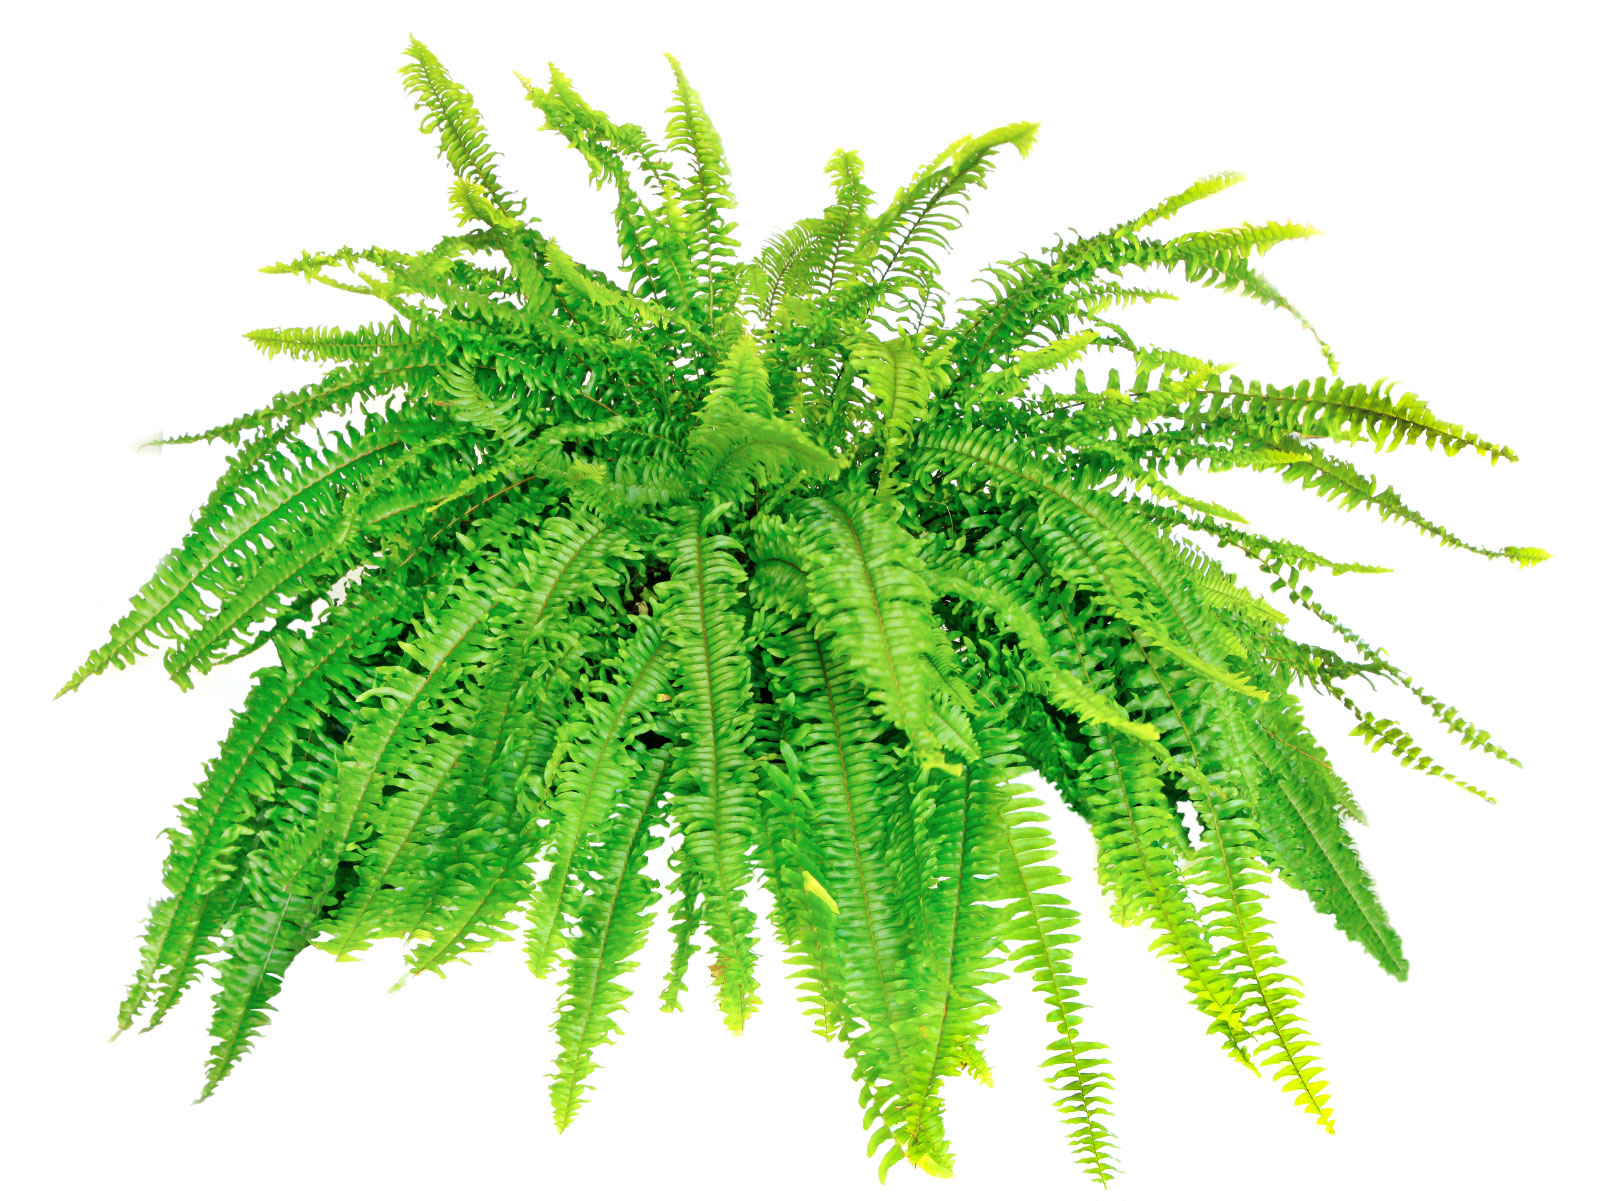 Fern Growing in a Pot 517.98 Kb